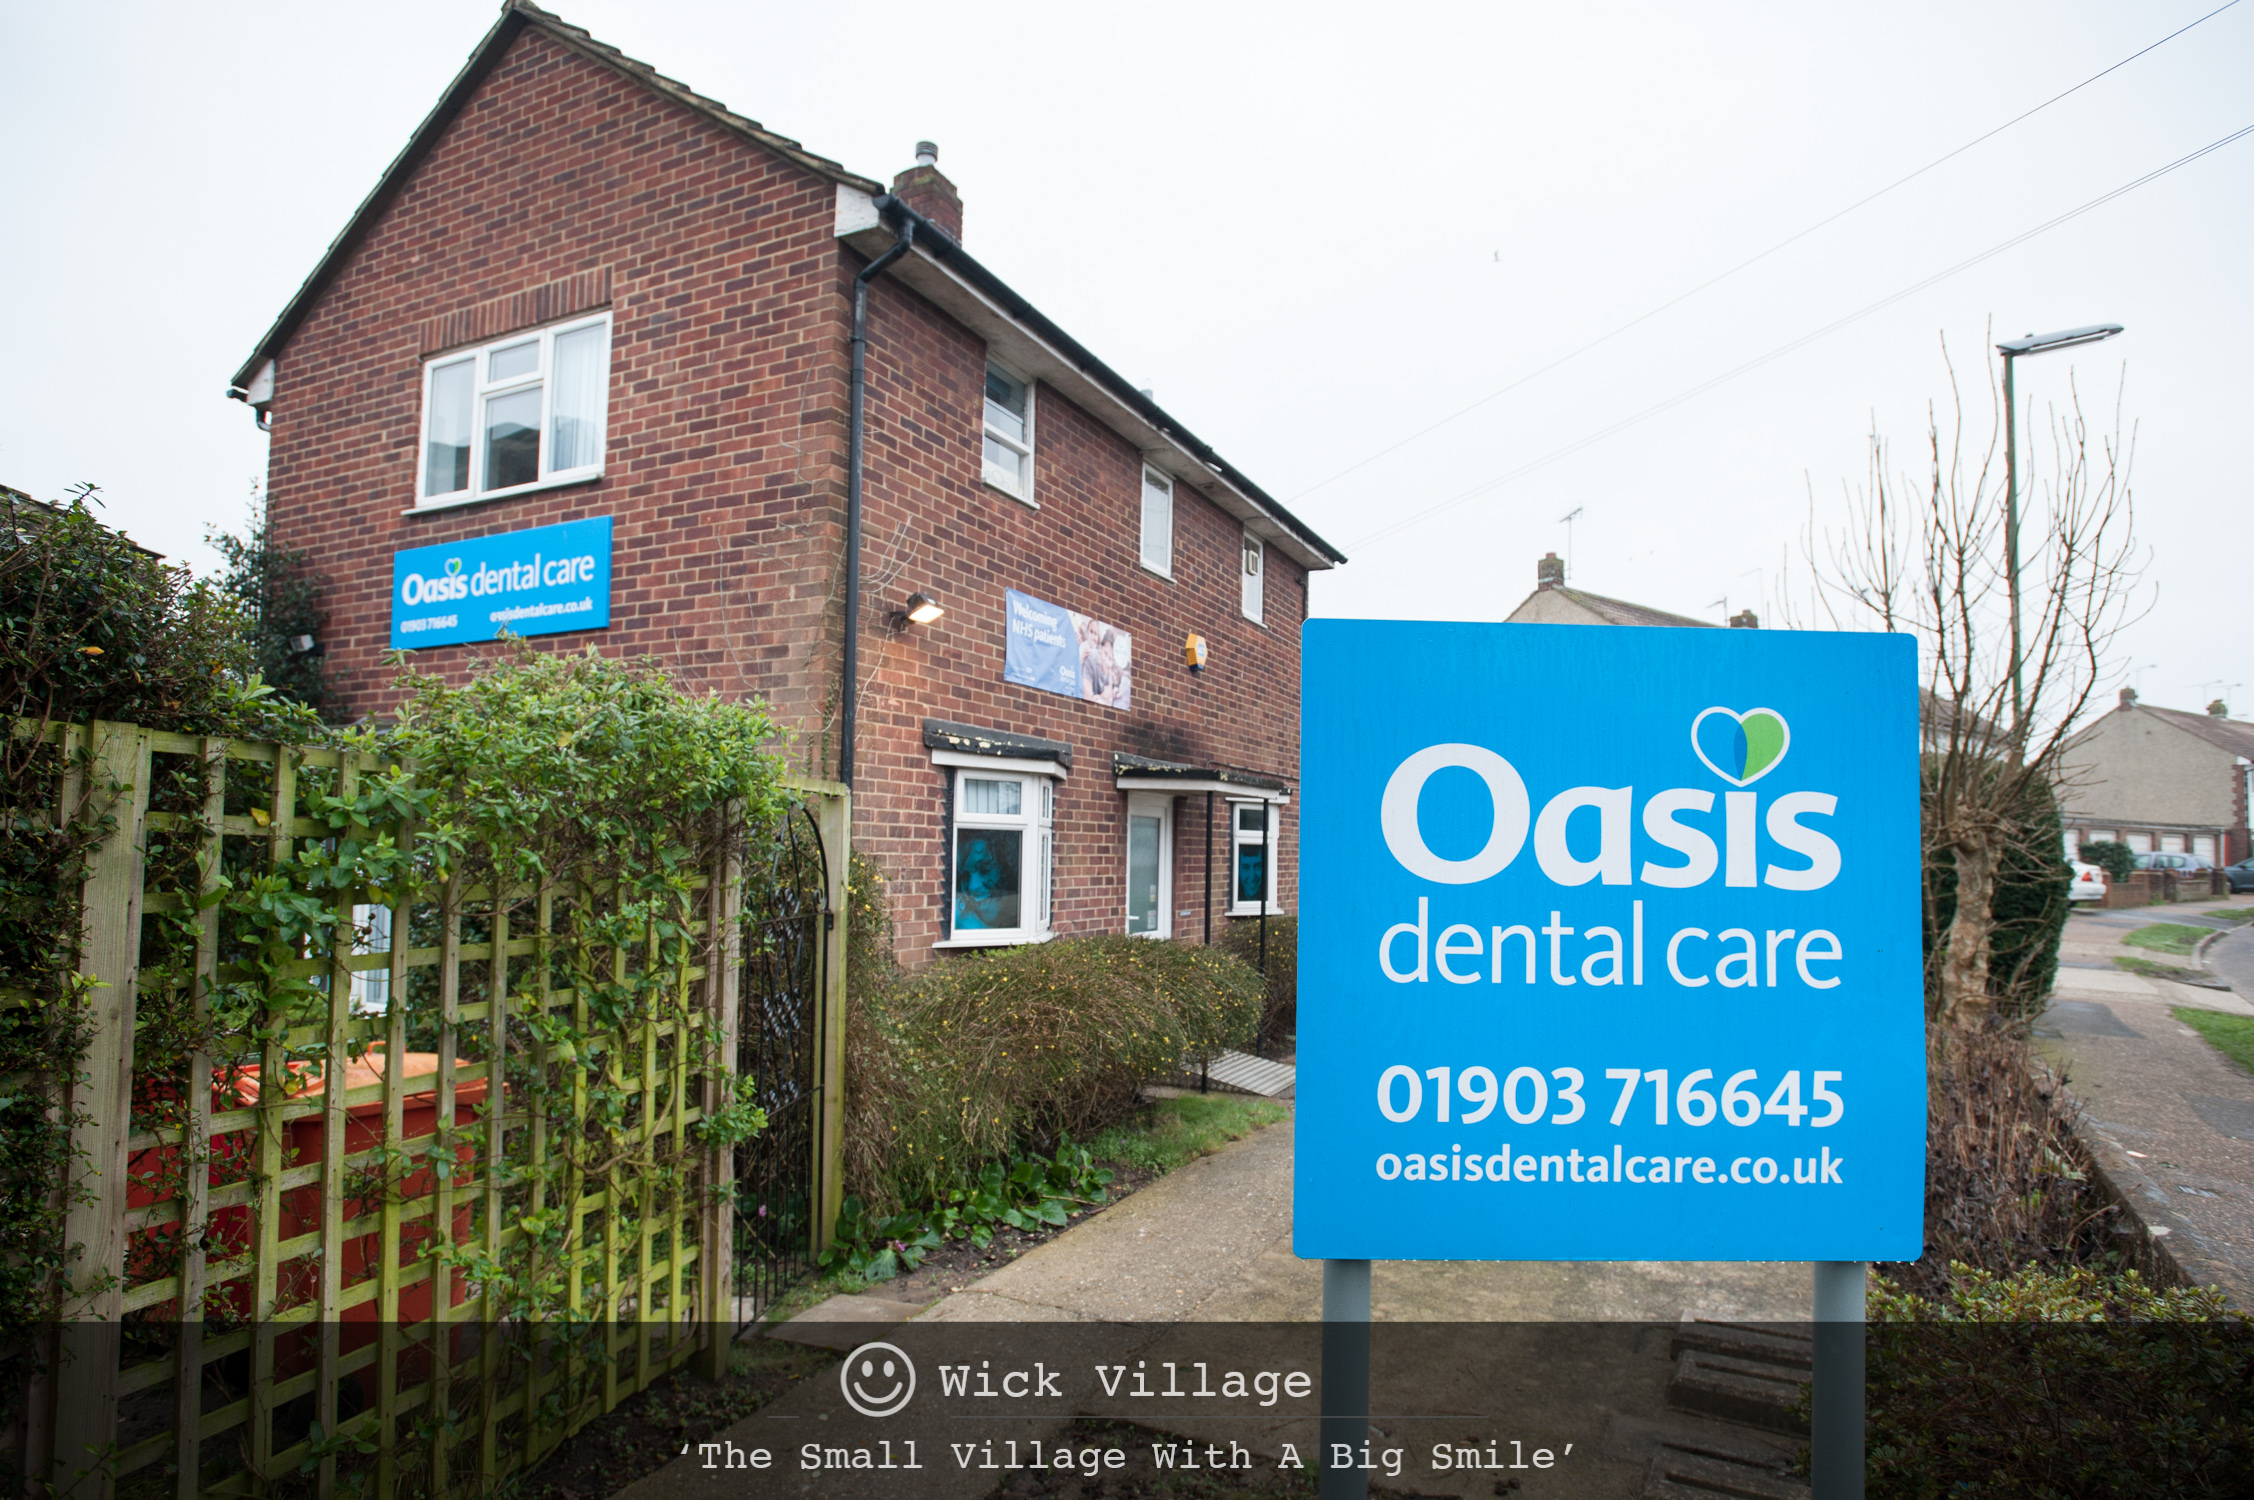 Oasis Dental Care, Wick Village, Littlehampton.